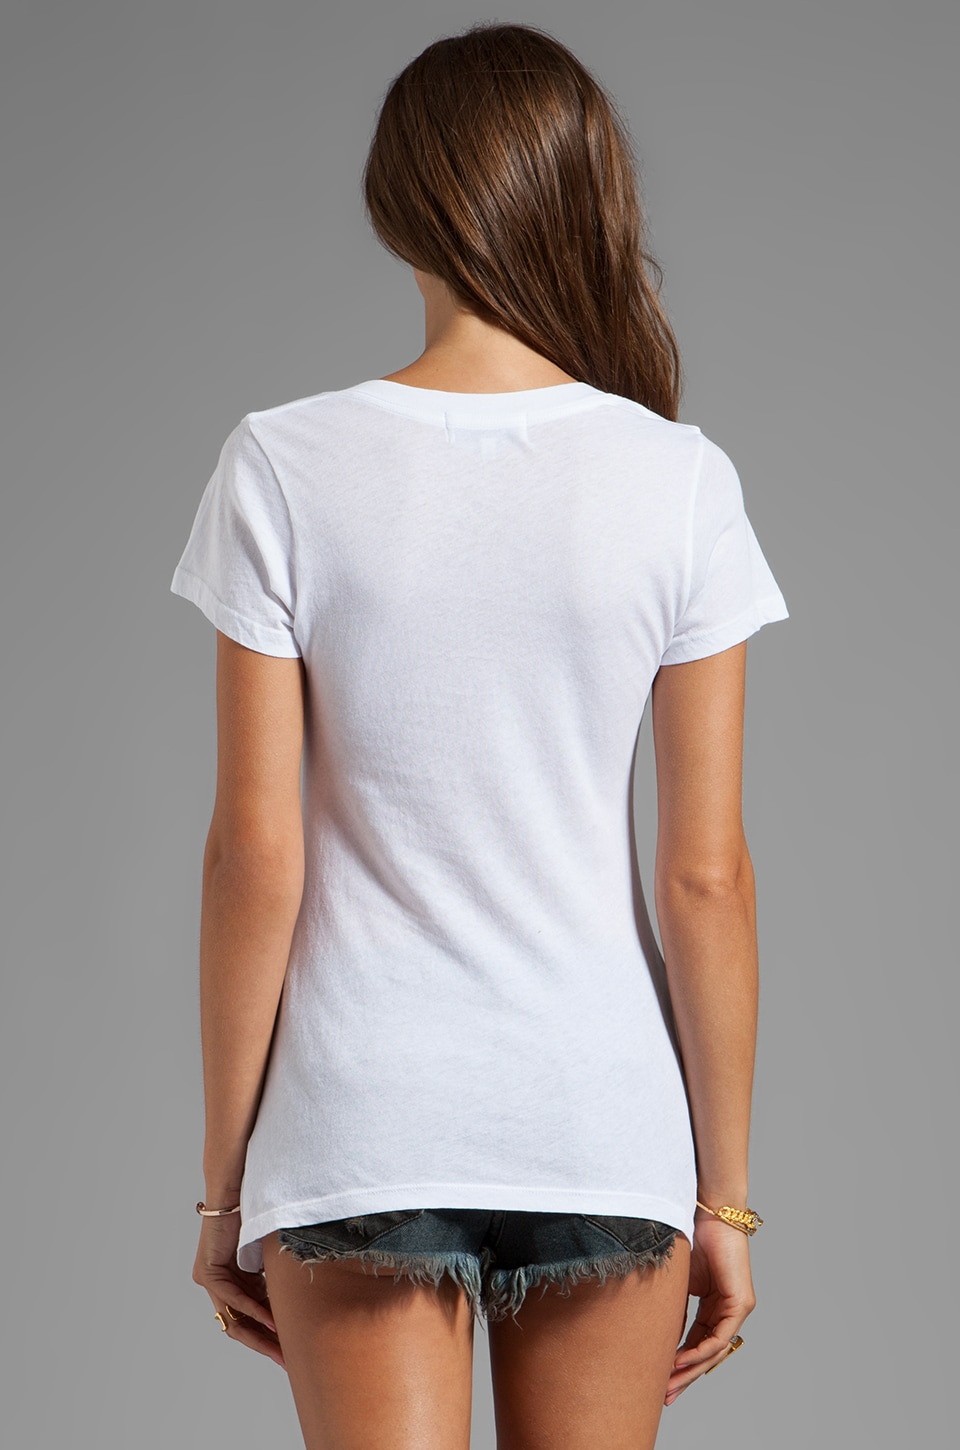 Wildfox Couture Bright Wing Bird Classic V-Neck Tee in Clean White